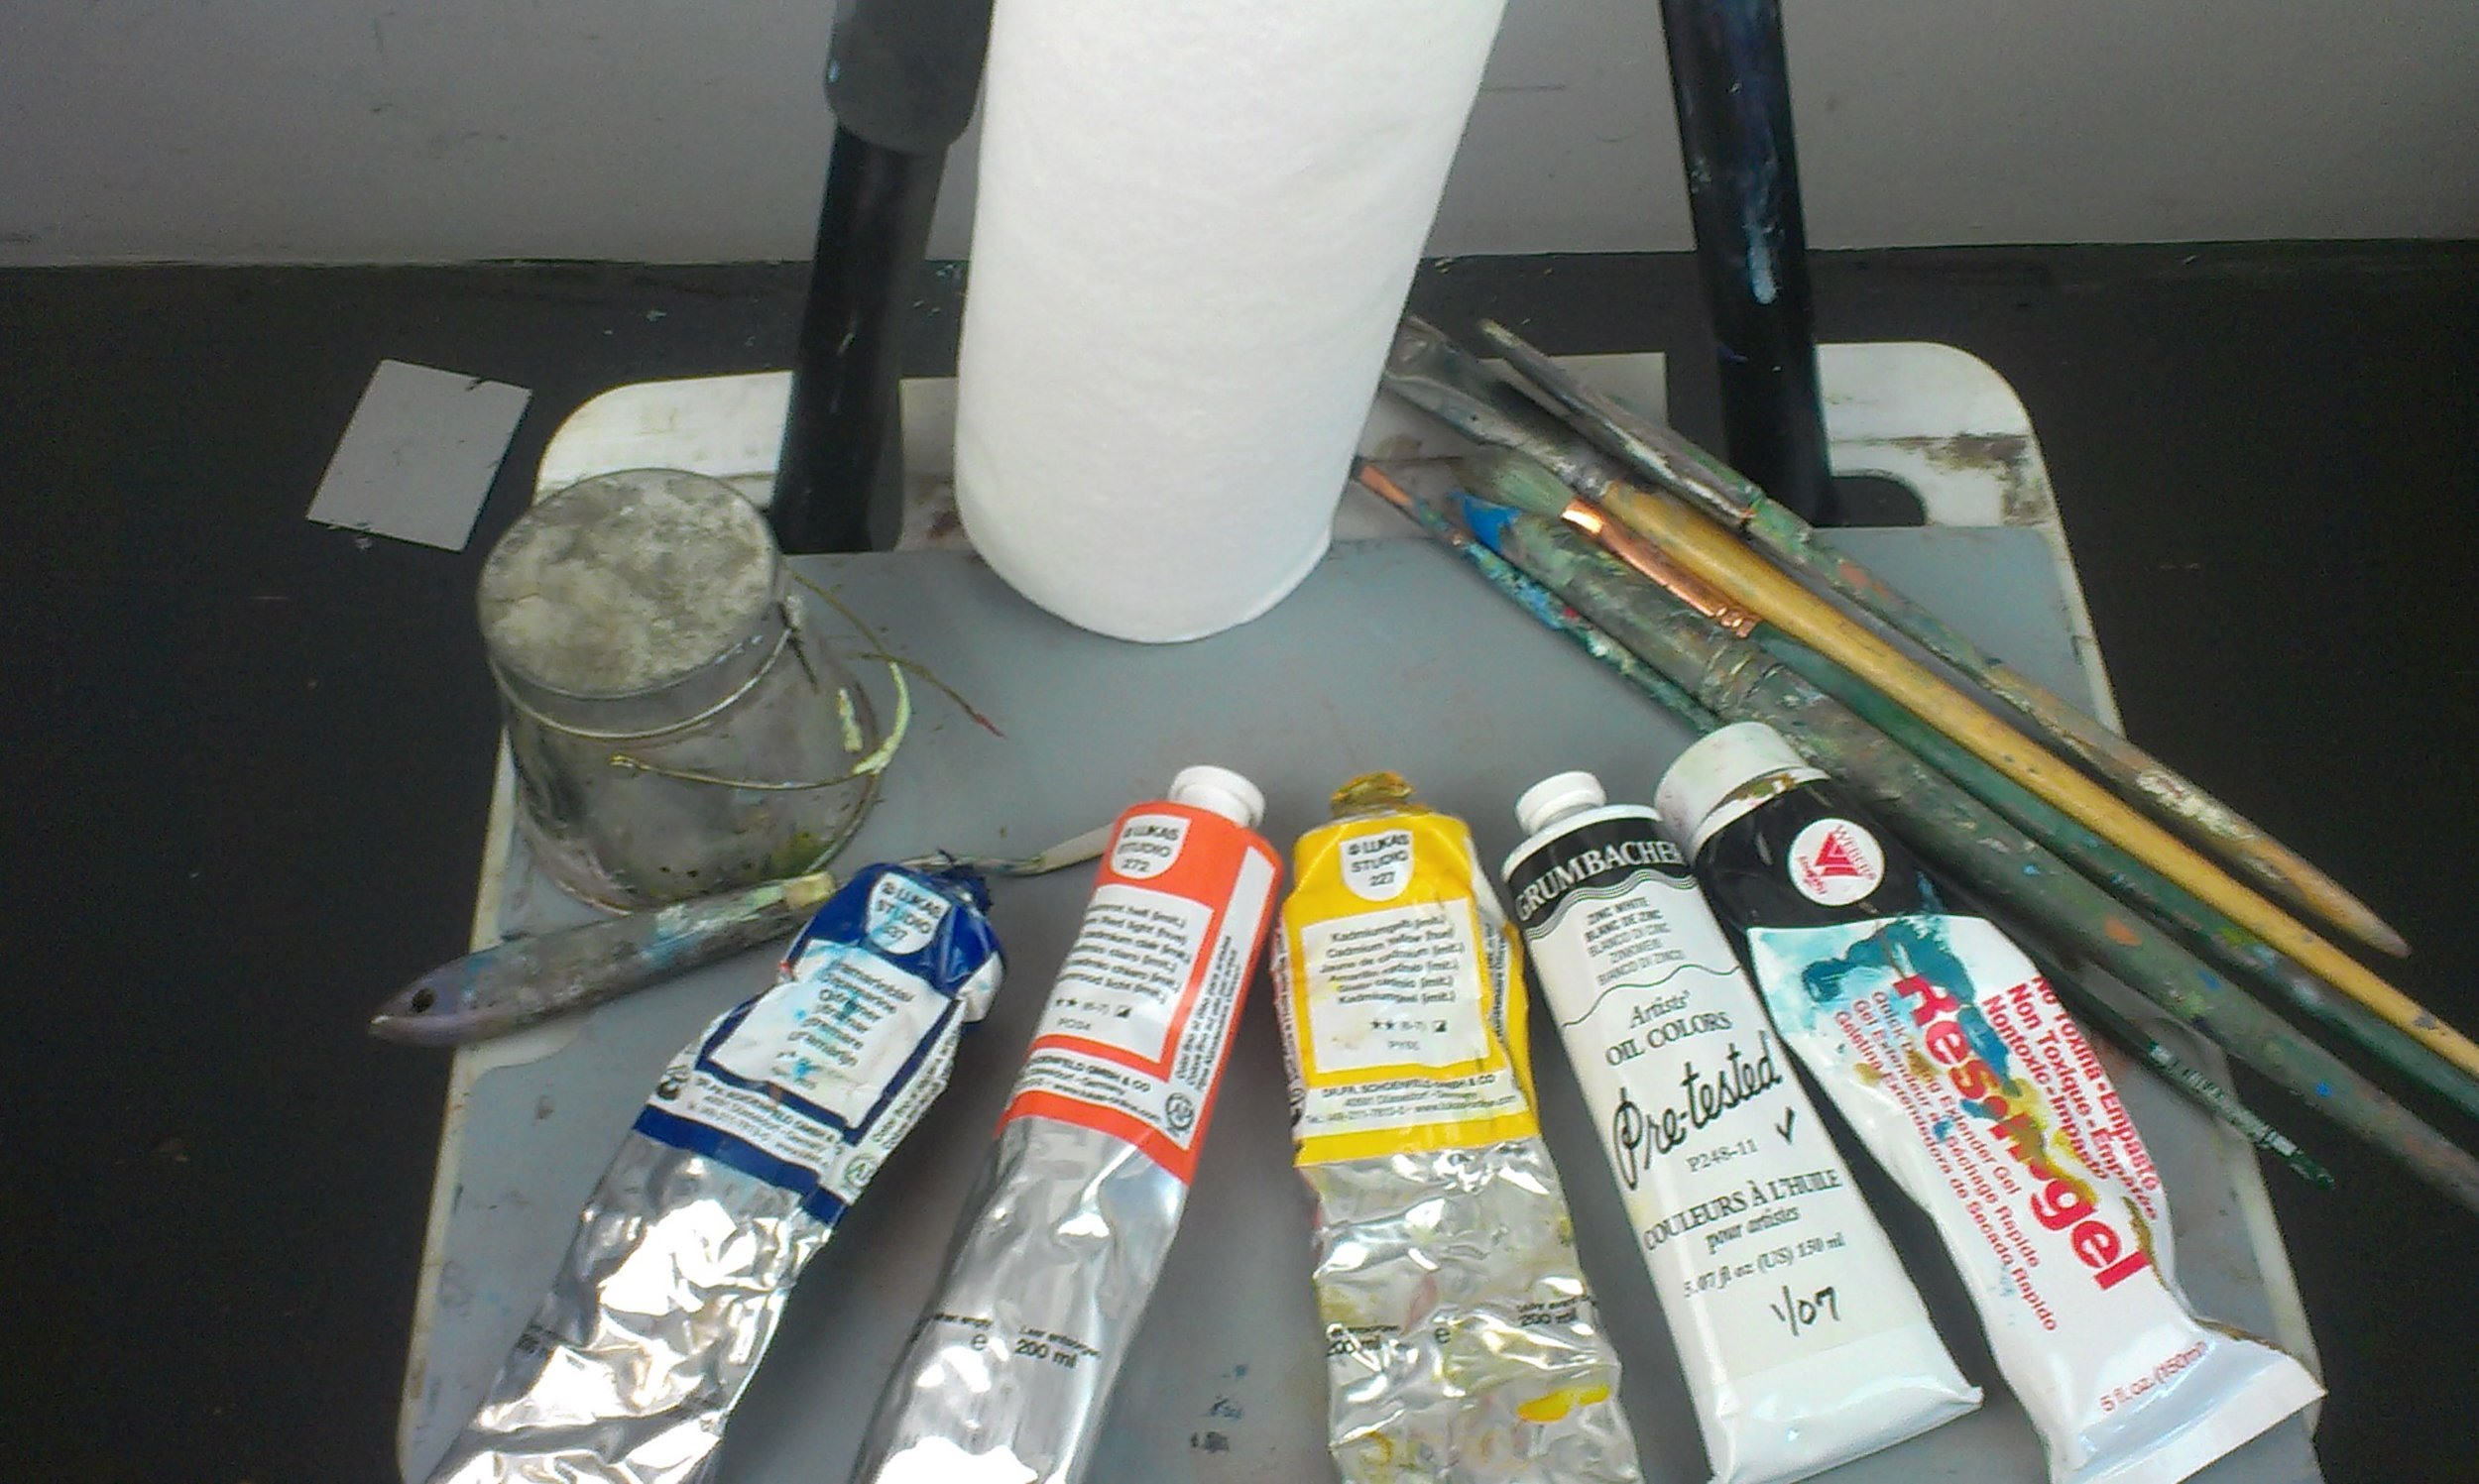 Oil Painting Supplies - Jerry's Artarama Shopping Cart for Oil Paints